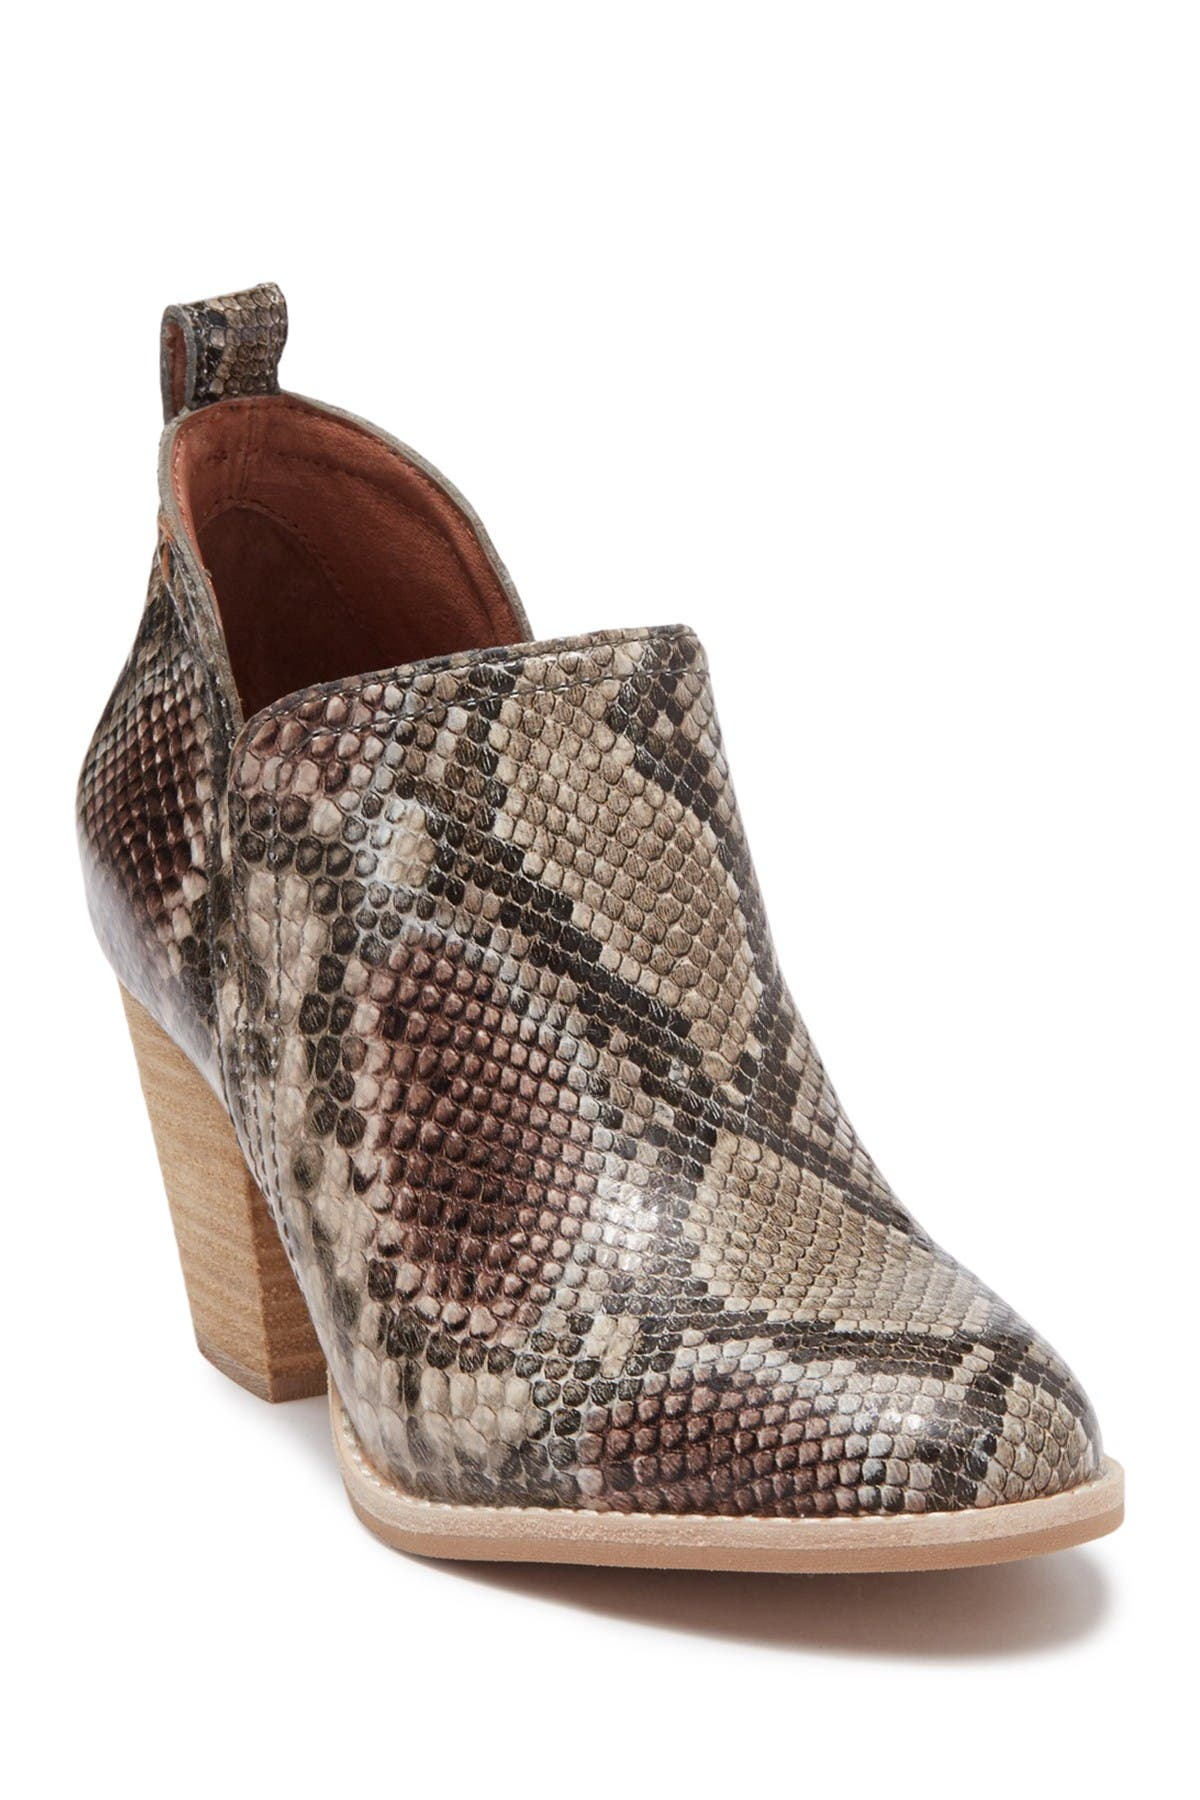 Image of Jeffrey Campbell Shark Snake-Embossed Leather Ankle Bootie